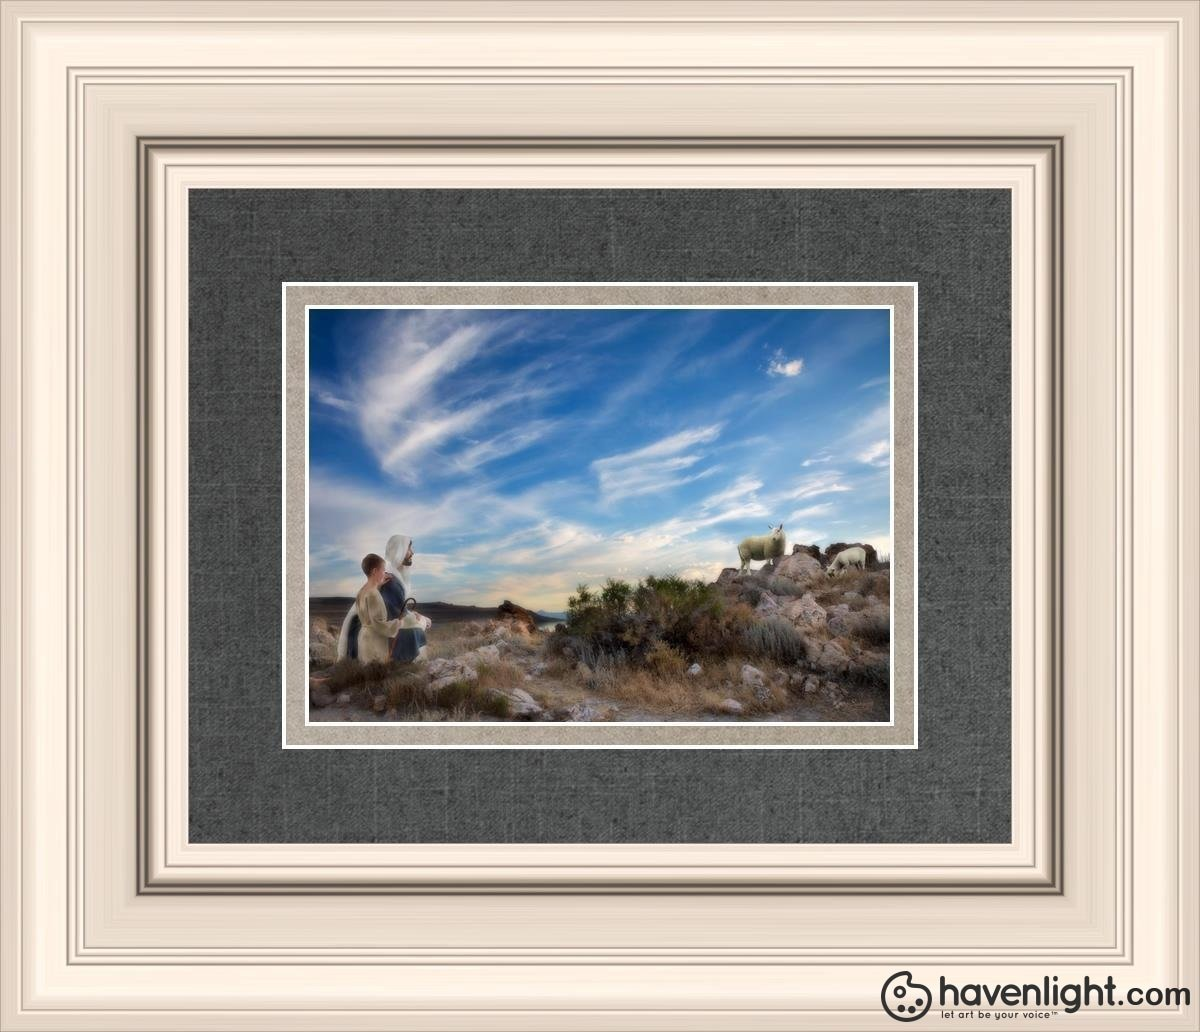 Training The Young Shepherd Open Edition Print / 7 X 5 Frame R 14 1/4 12 Art